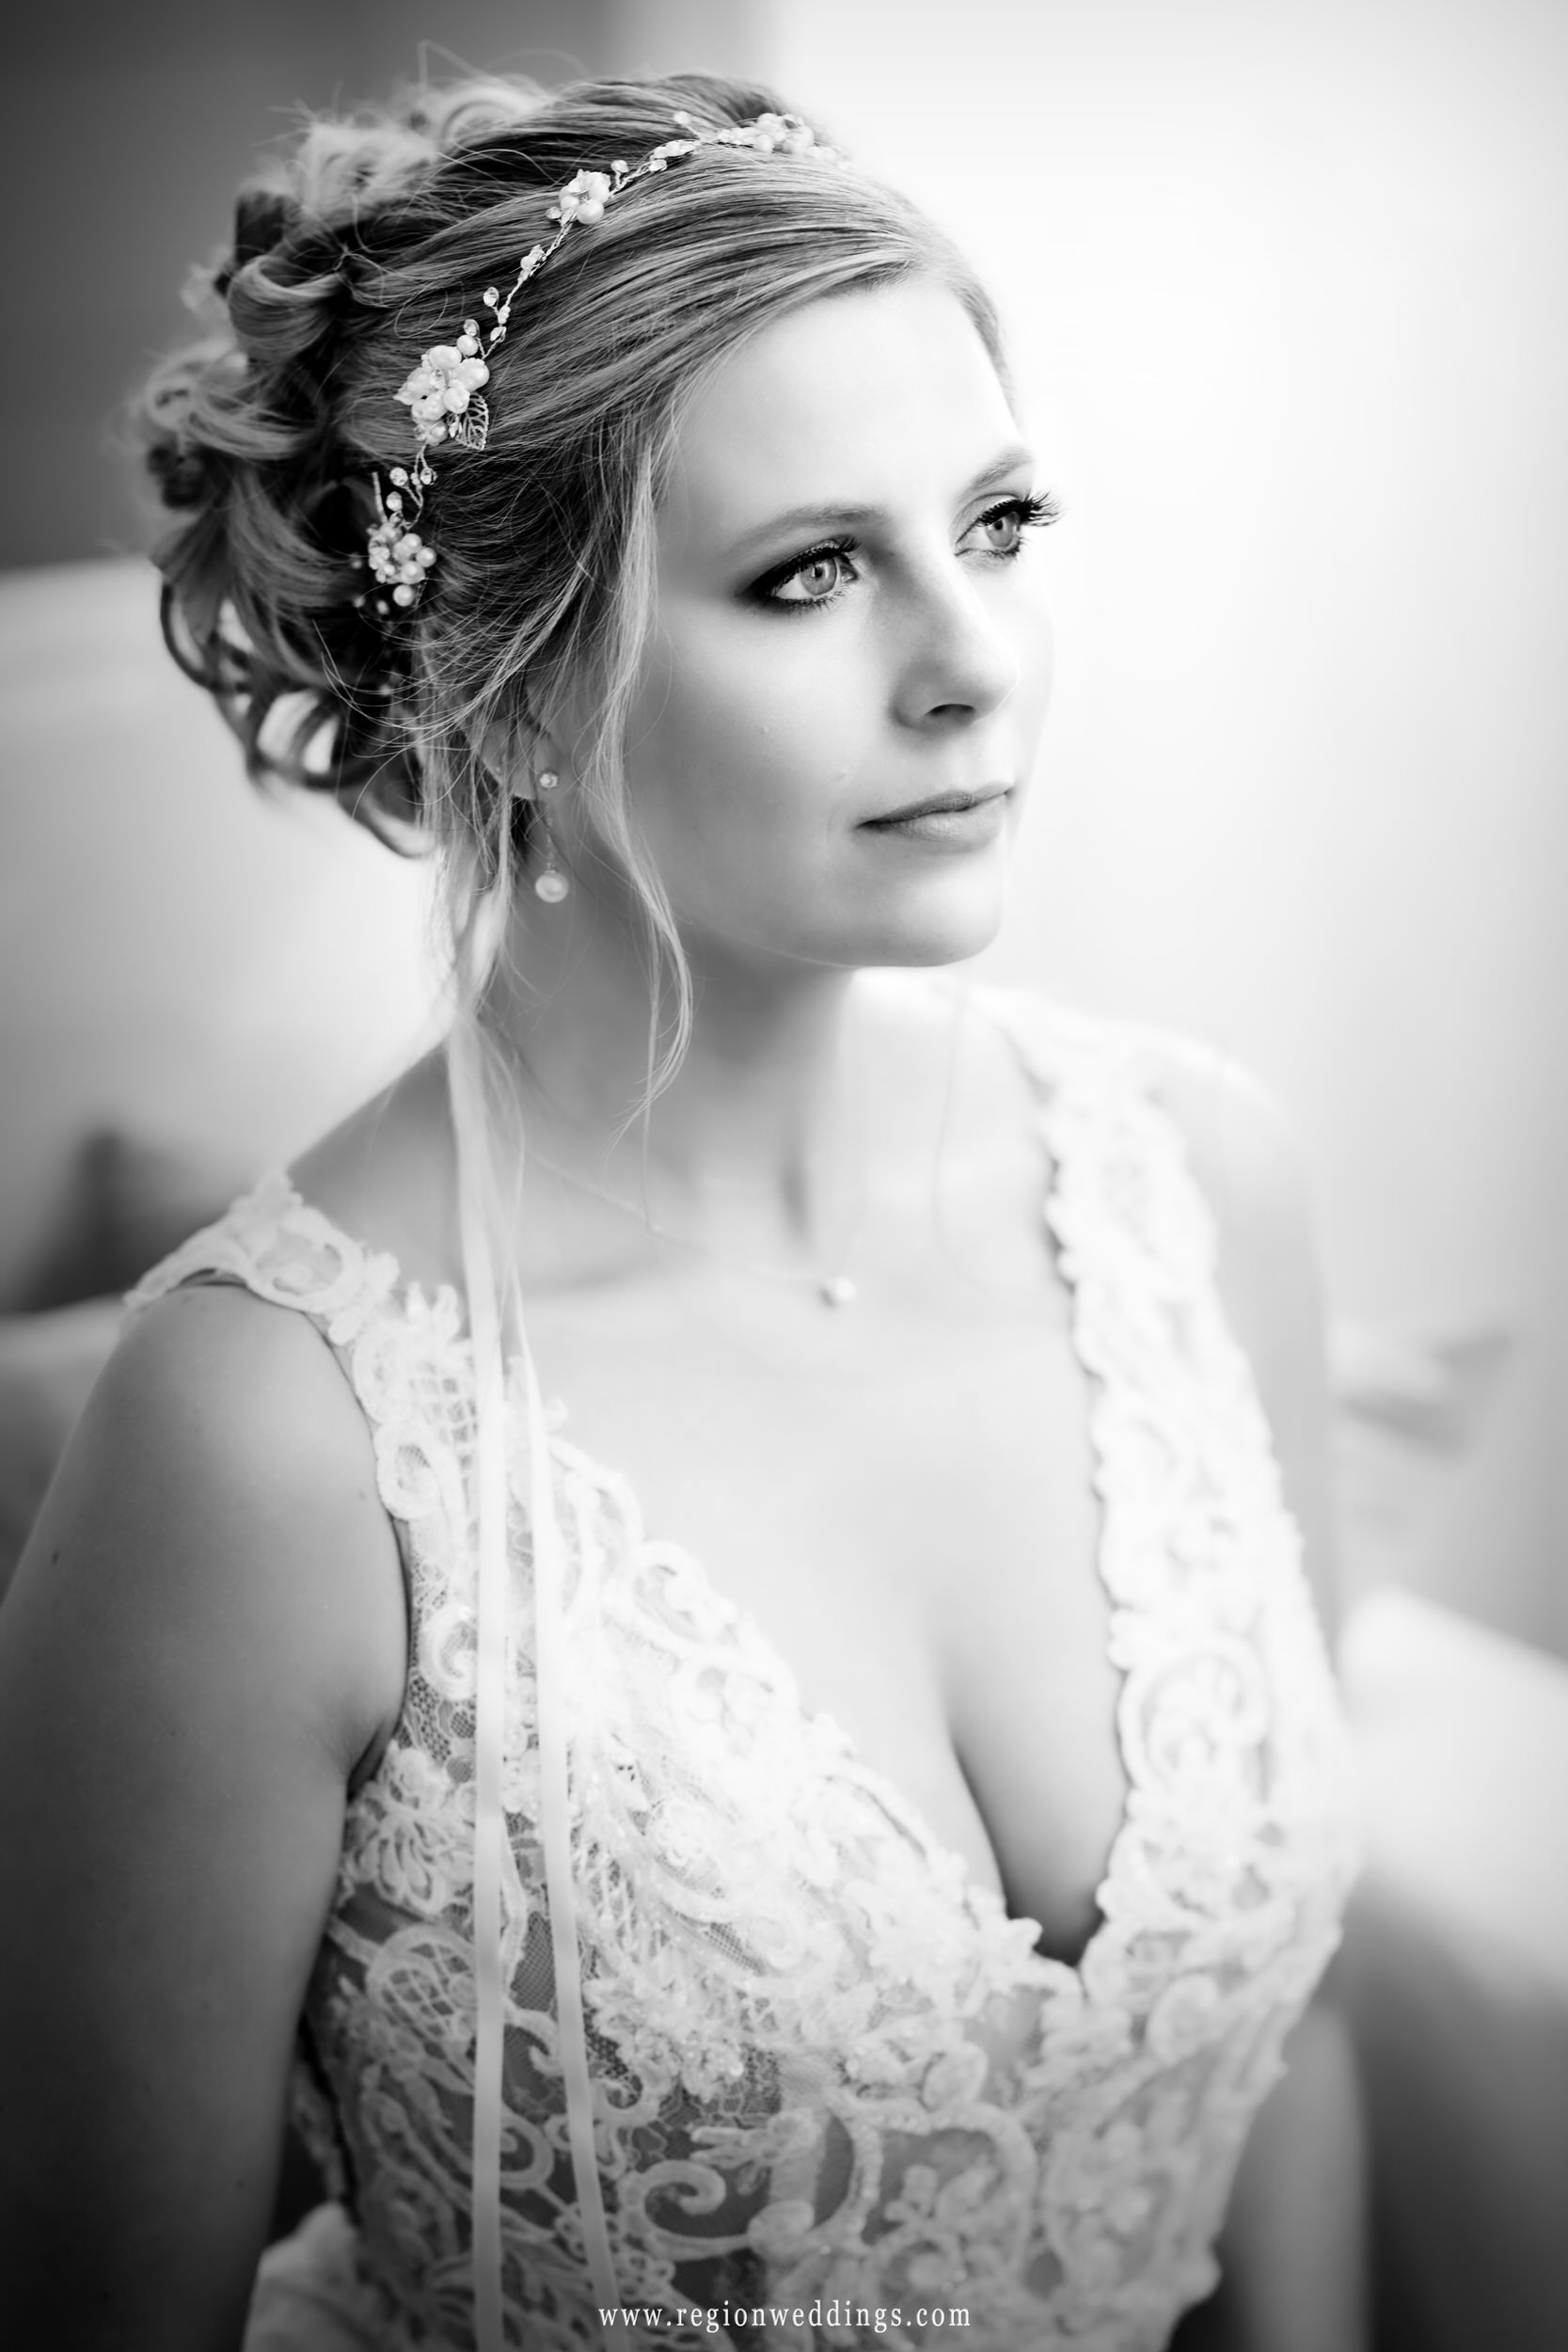 A classic black and white photo of the bride on her wedding day.